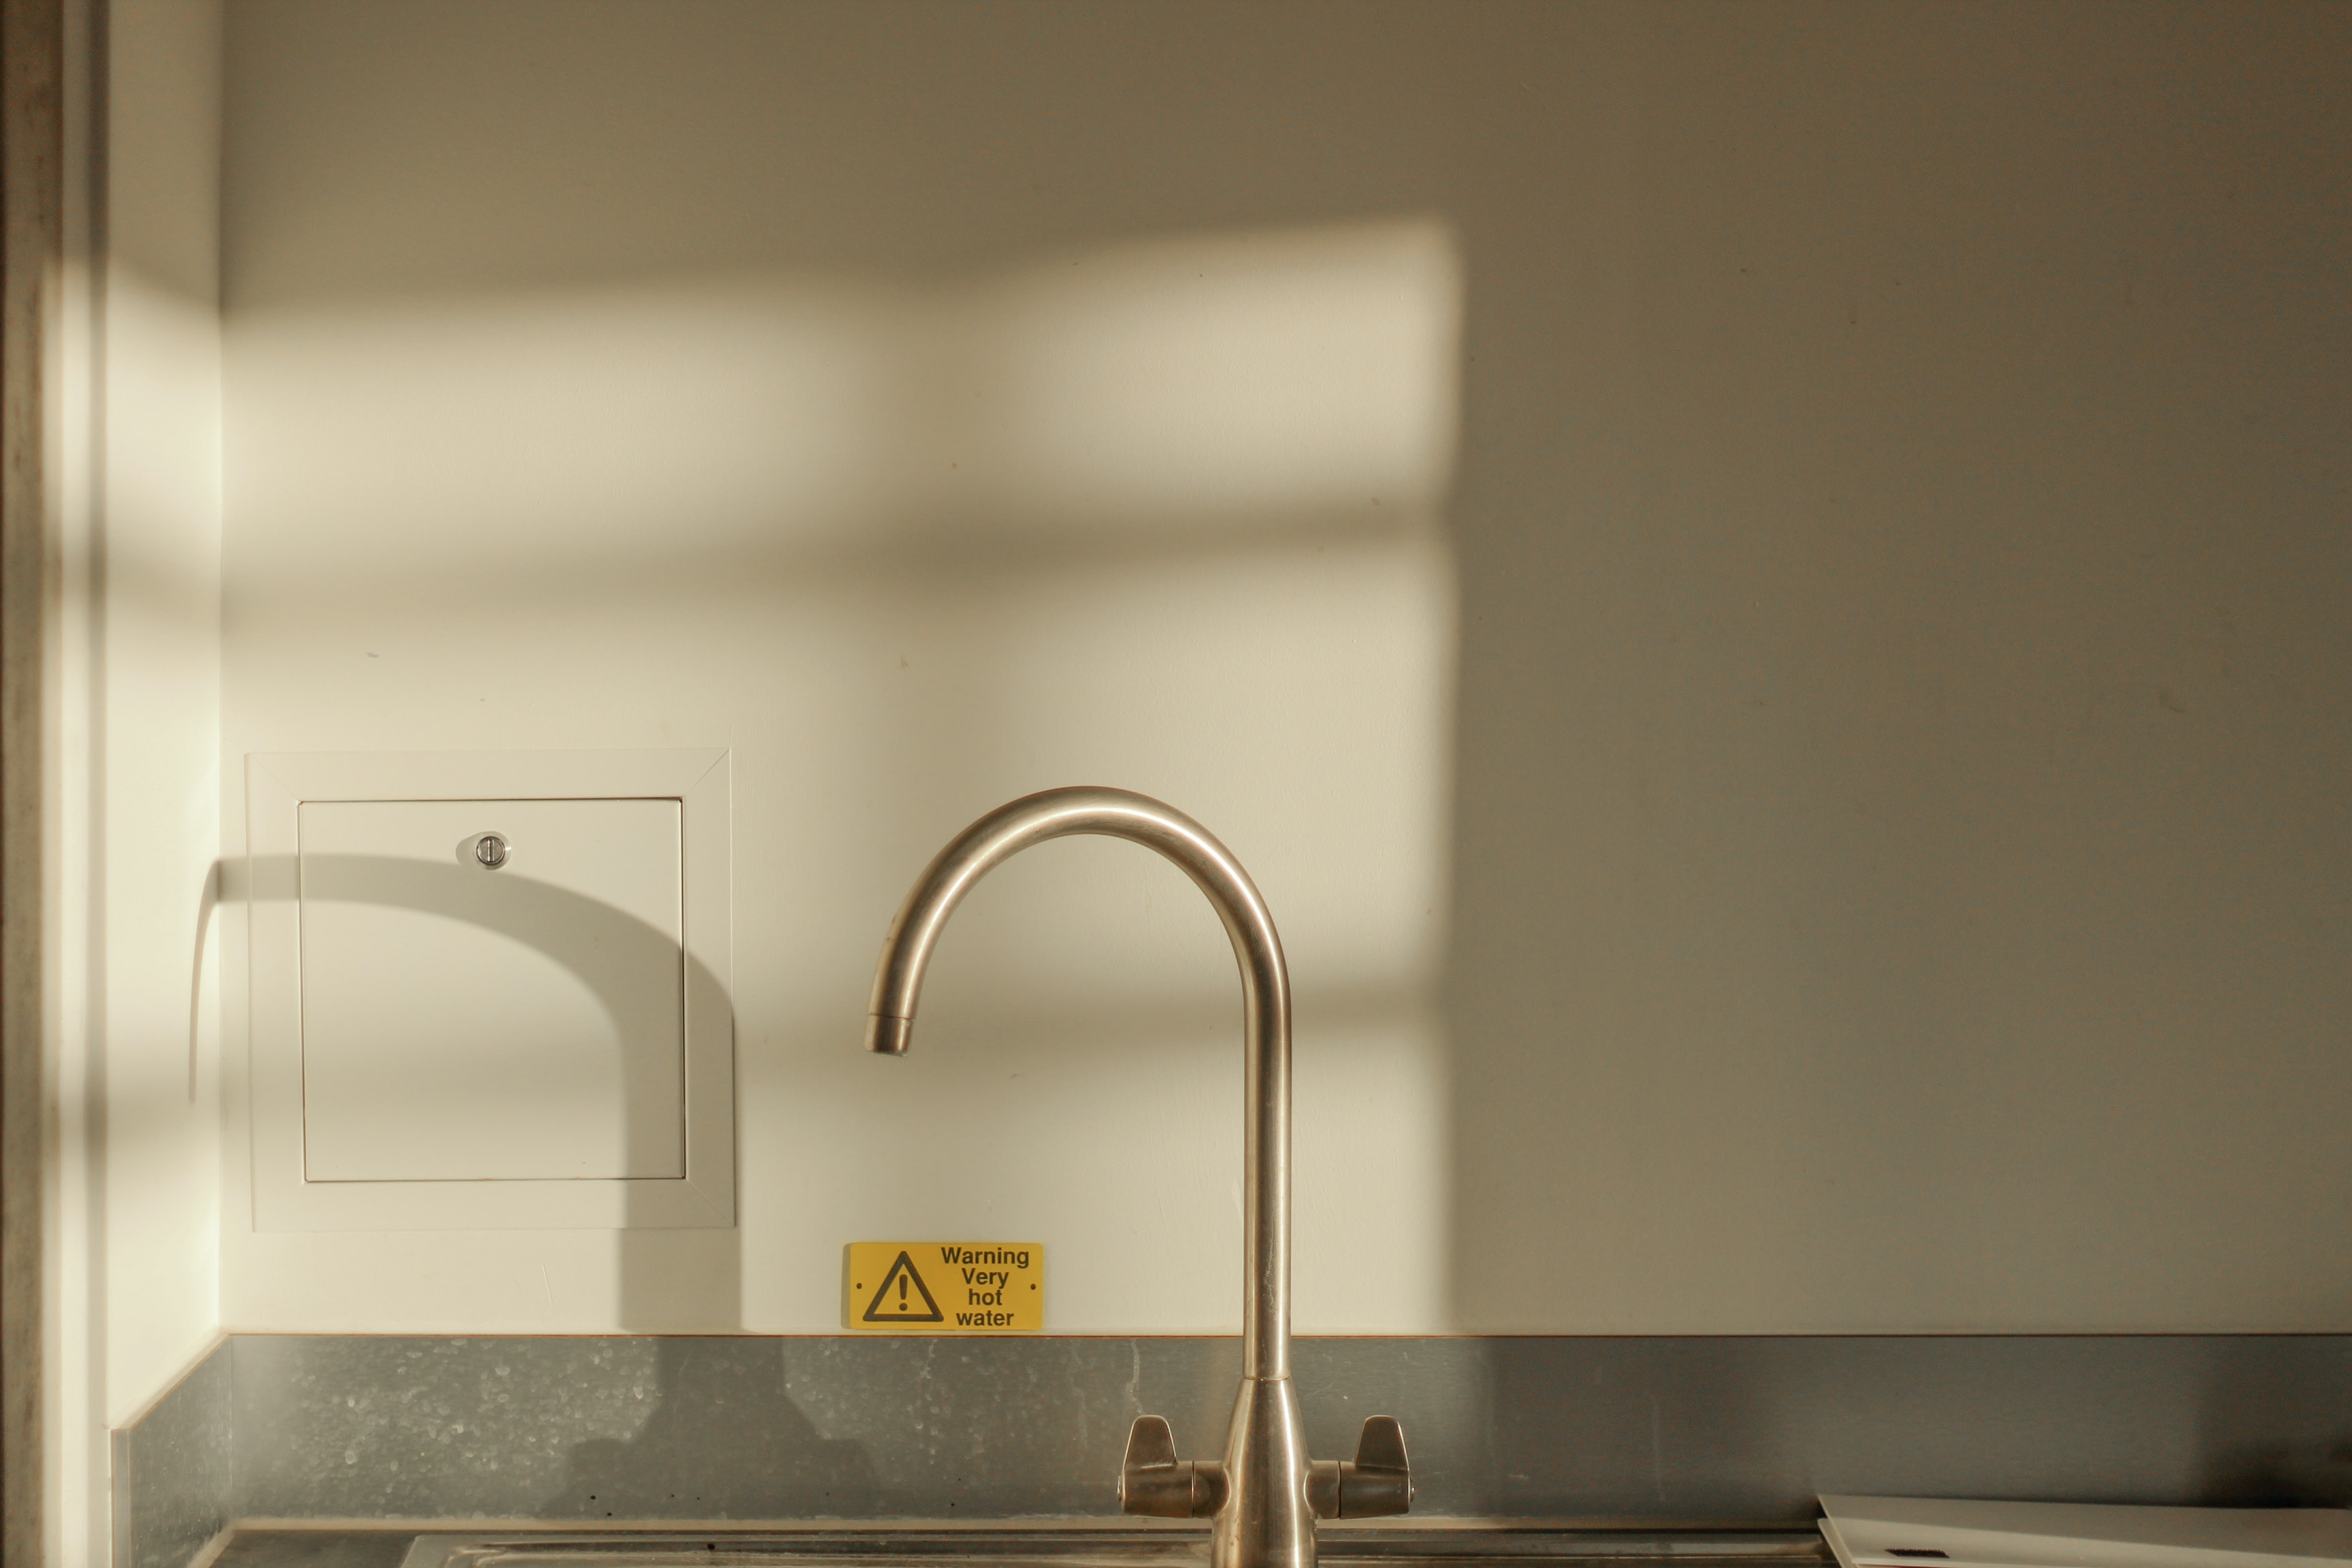 turned off faucet on sink with shadow on wall